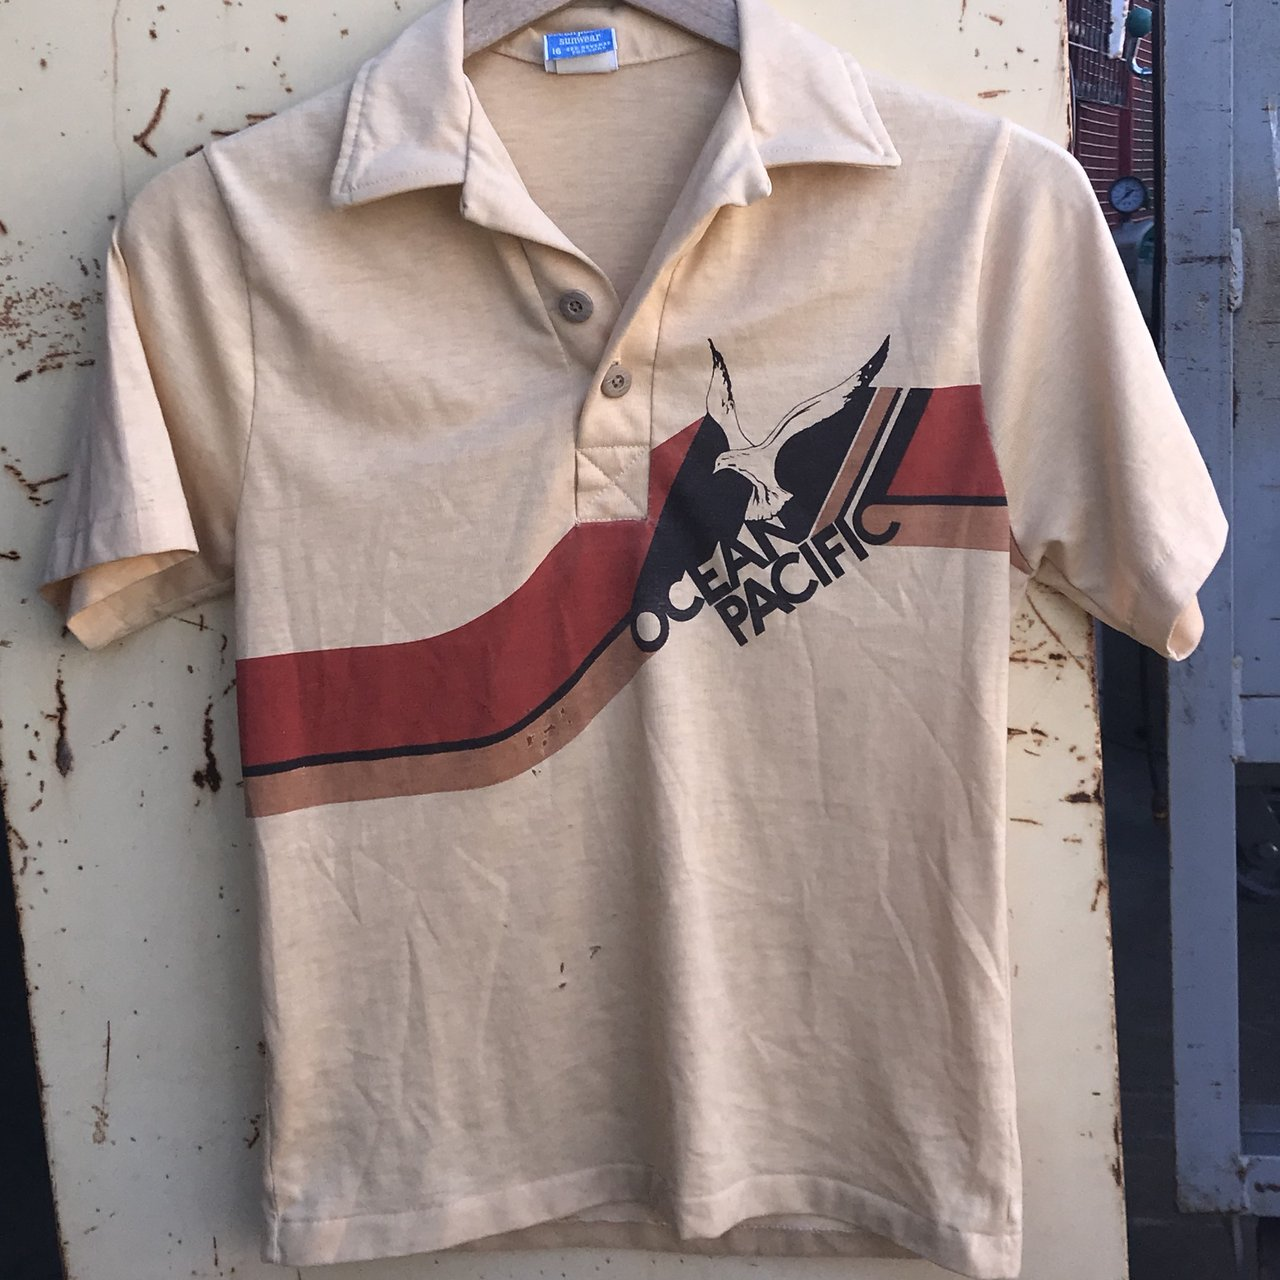 Vintage Op Ocean Pacific Polo Shirt Tagged Size 16 Id Say Depop